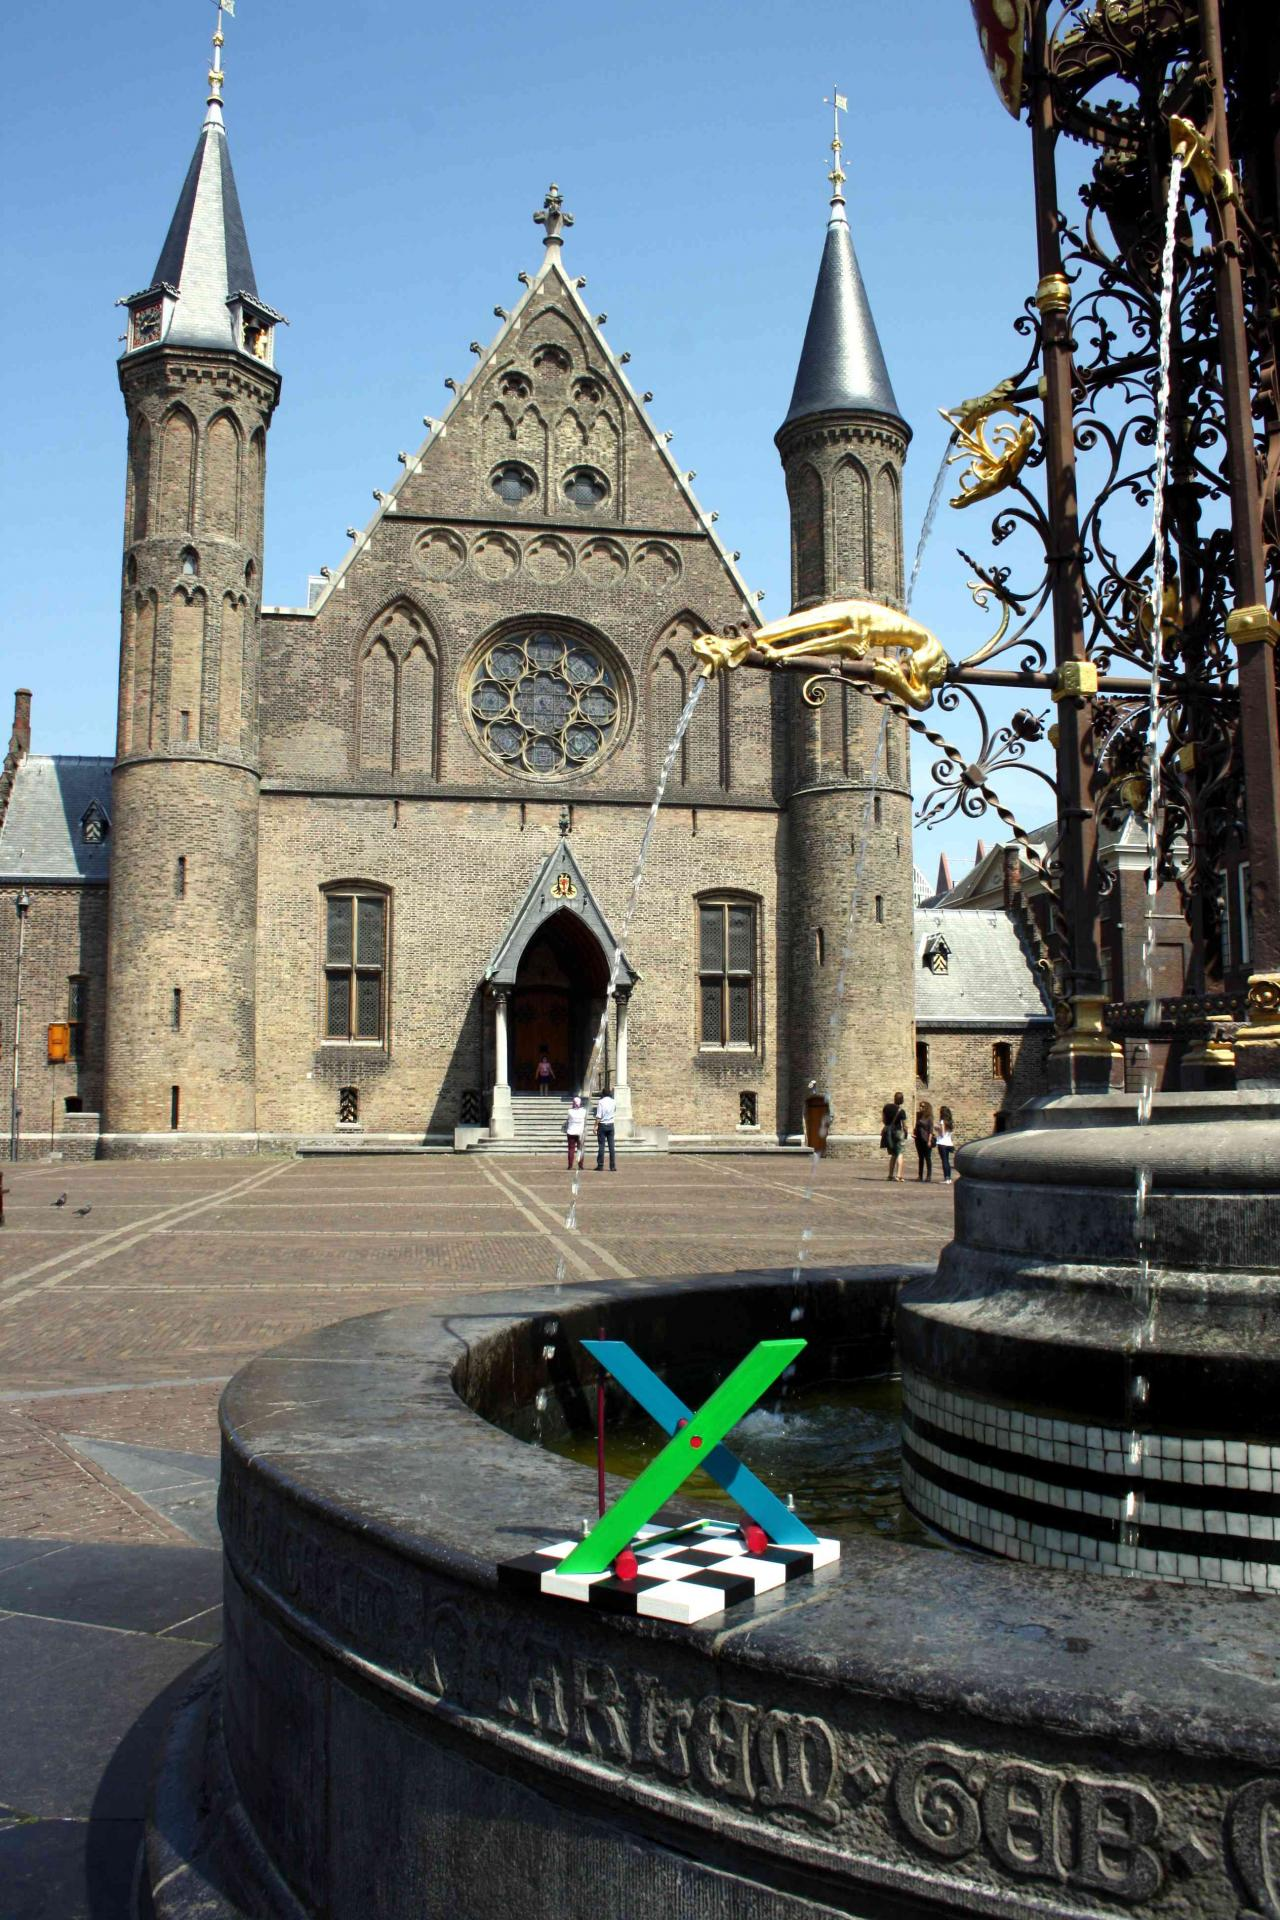 X by Johannes BlonK at the Binnenhof, The Hague, The Netherlands